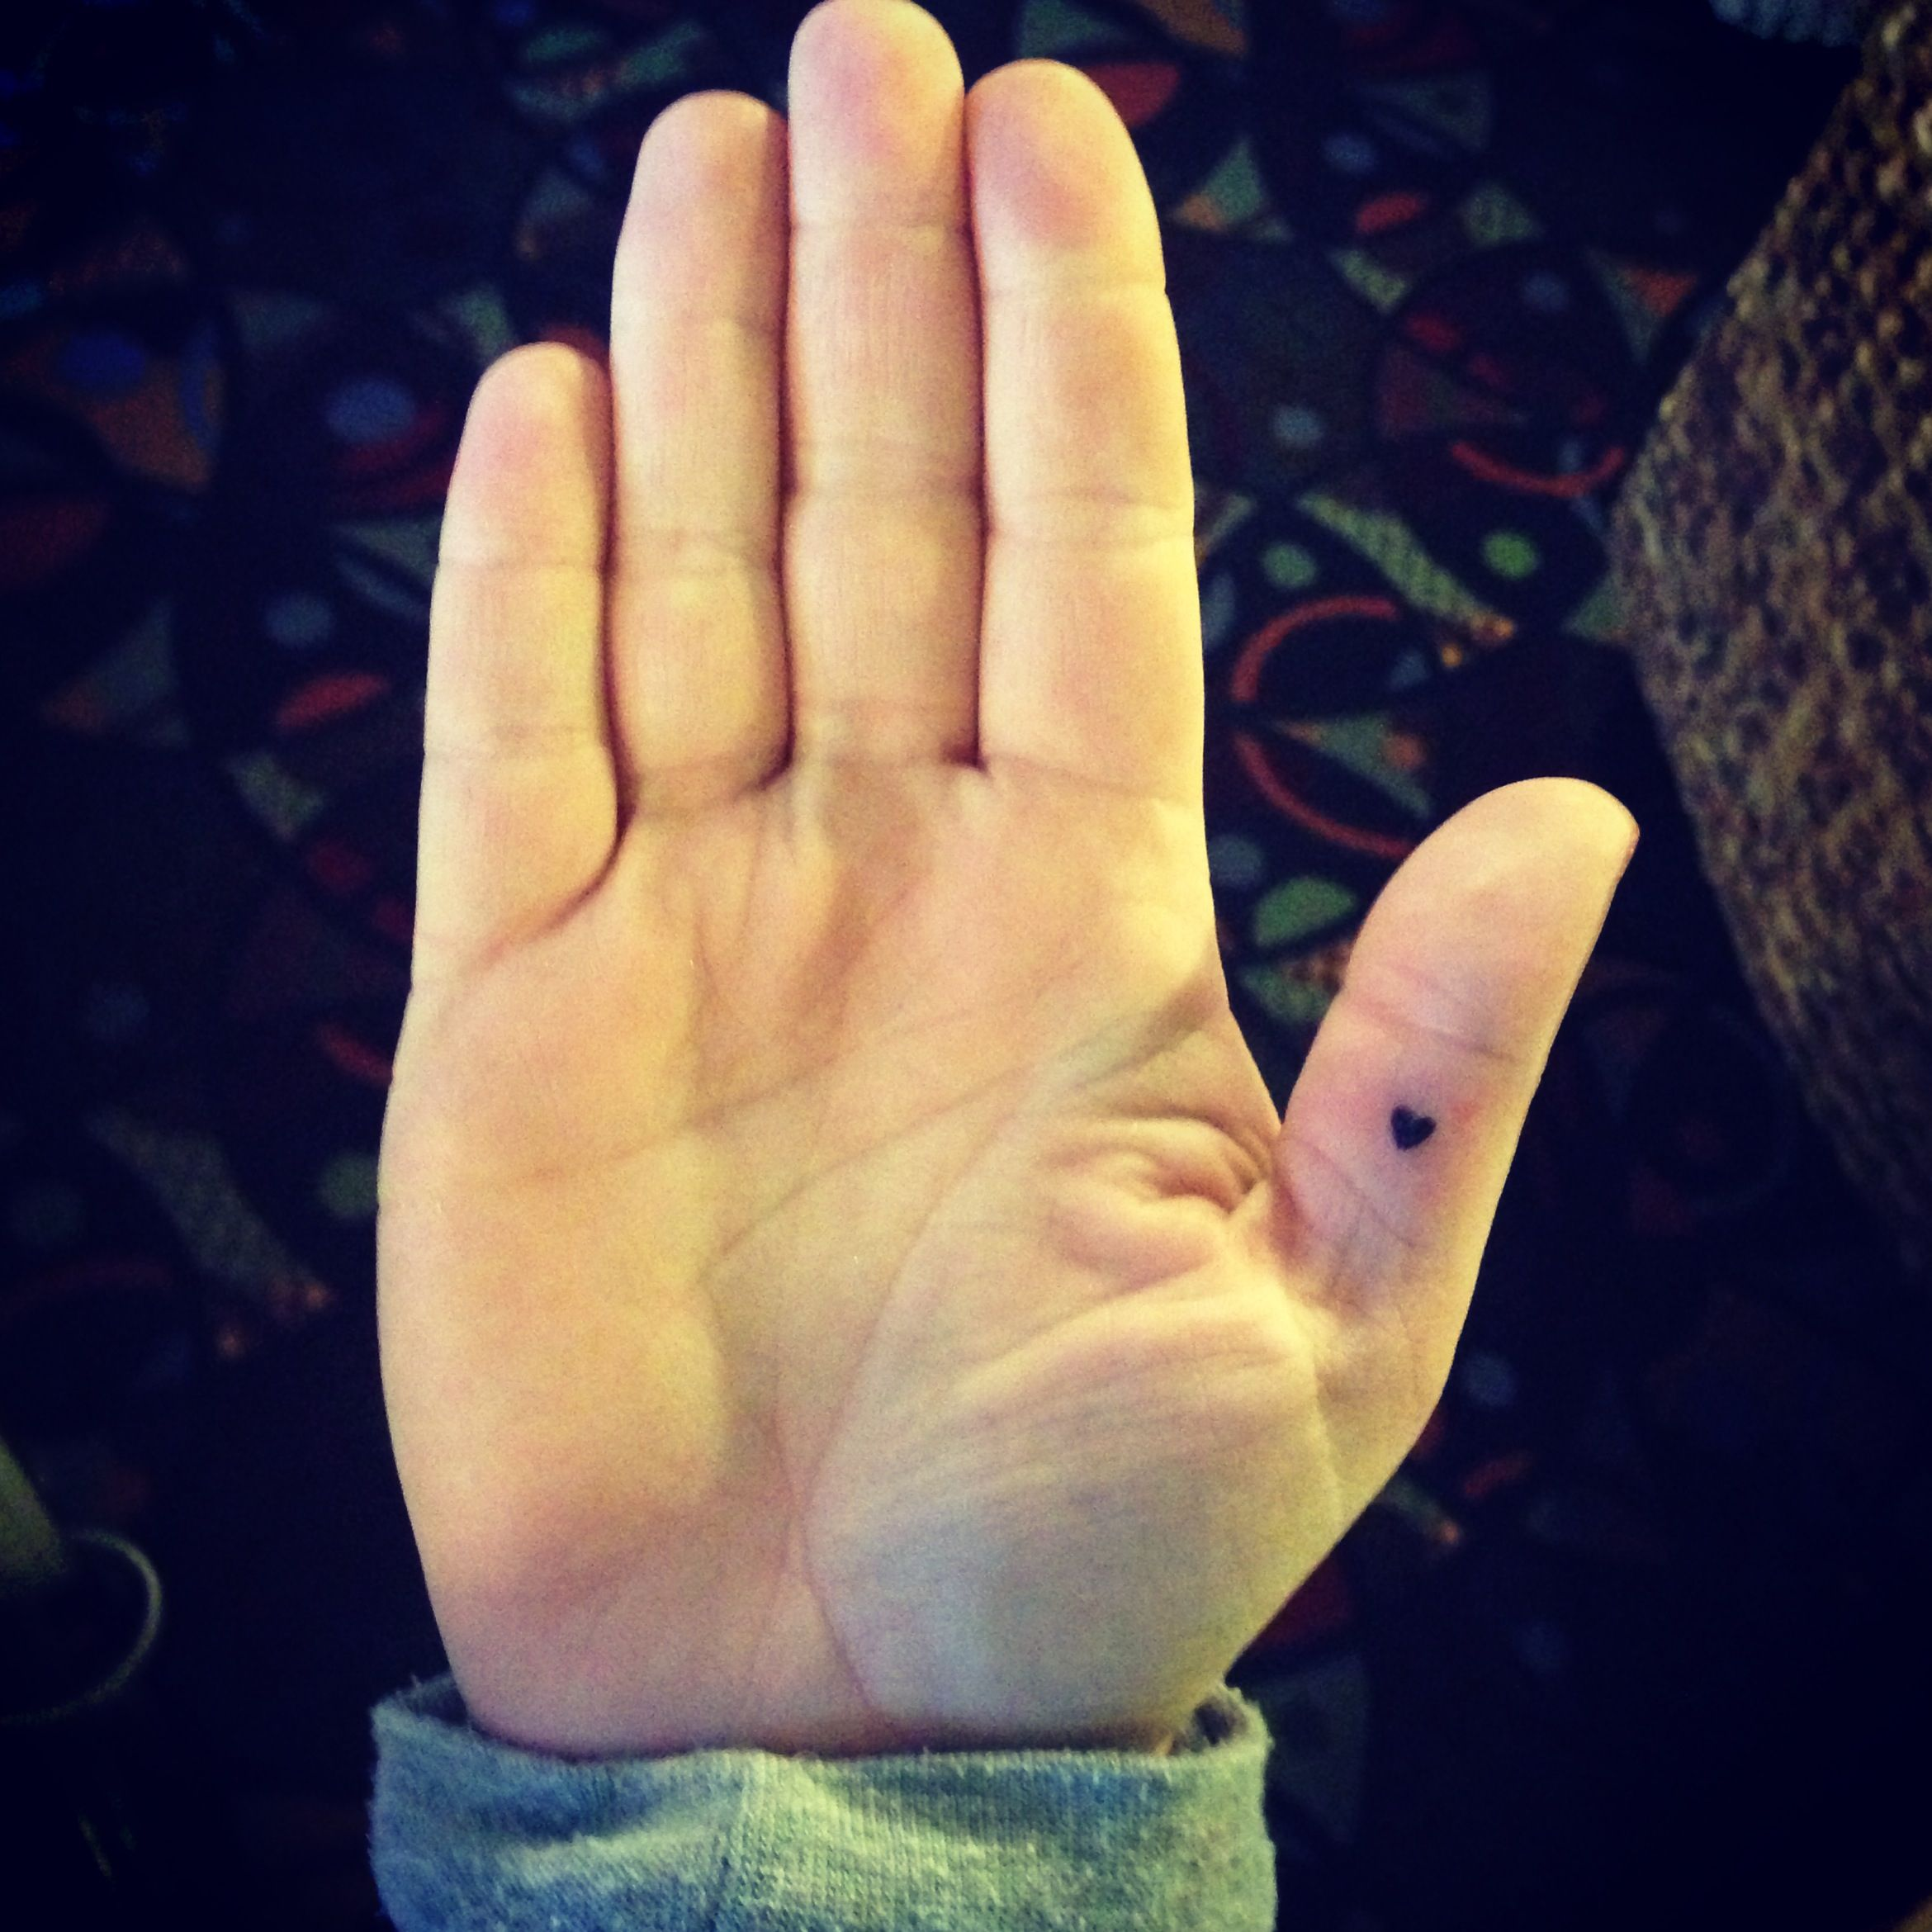 Cool tattoo designs for your hand  rad tattoos to pay tribute to your favorite place  michigan